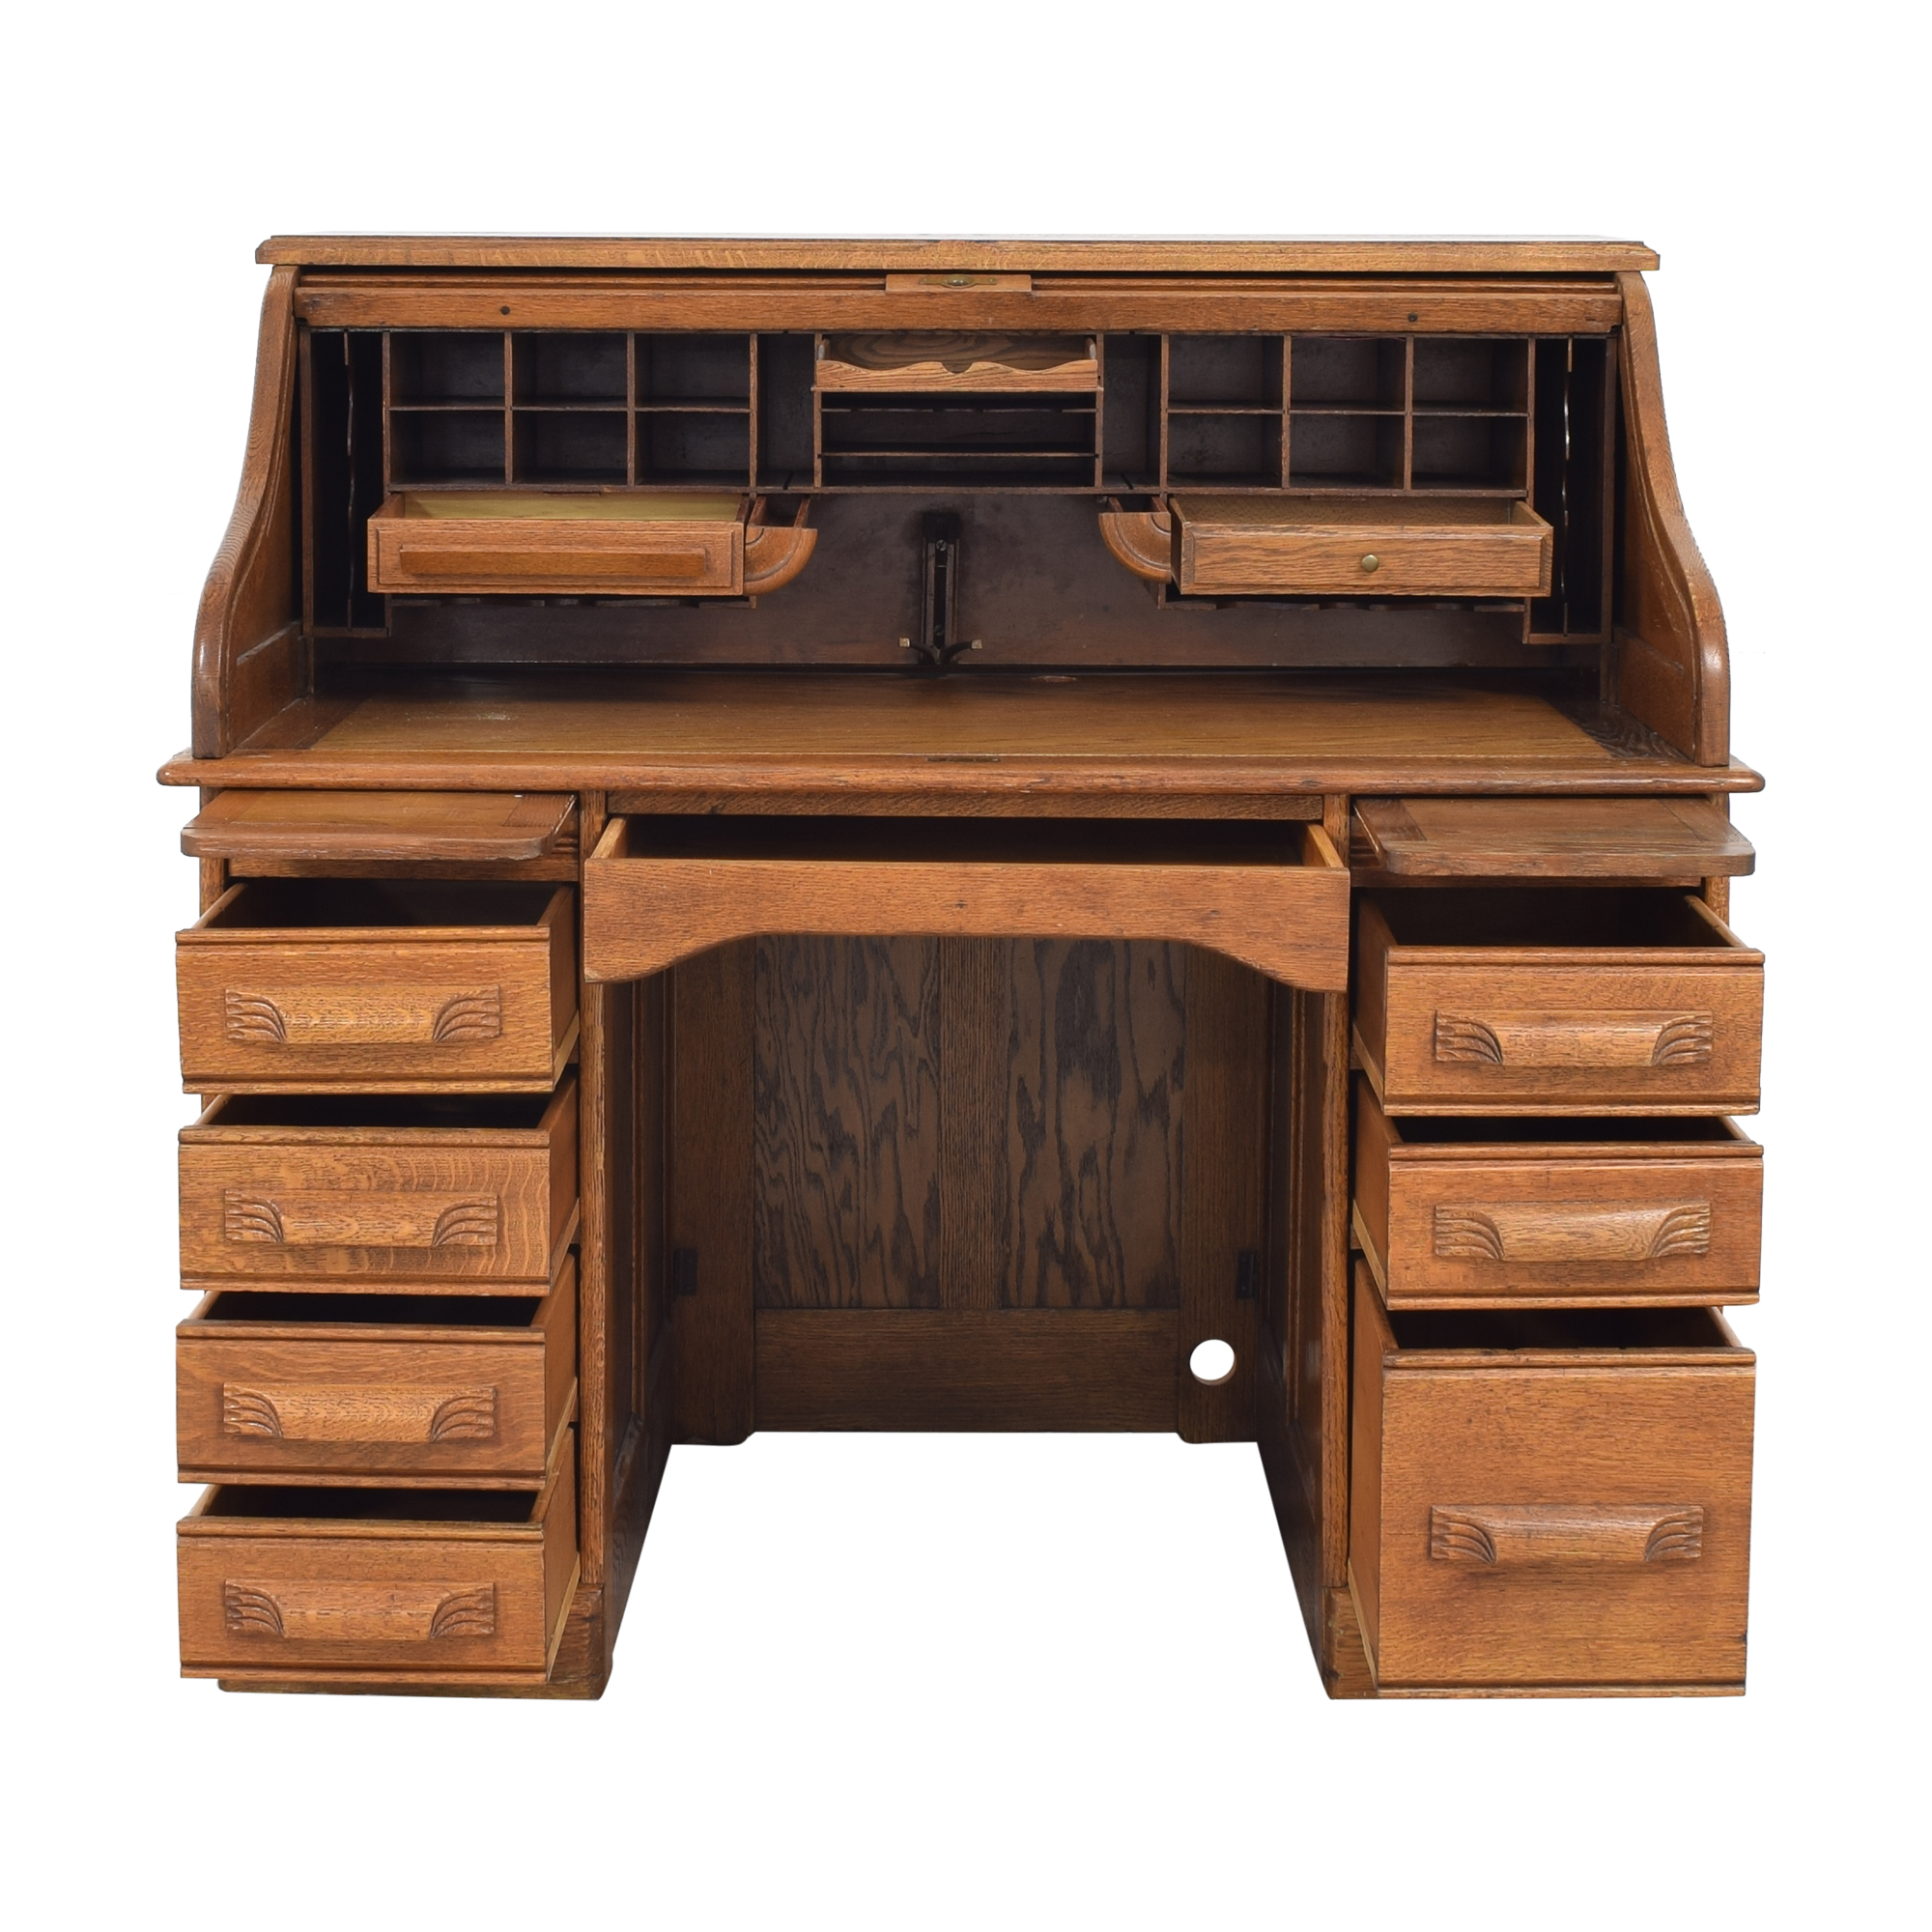 74% OFF - Antique S Curve Roll Office Desk / Tables